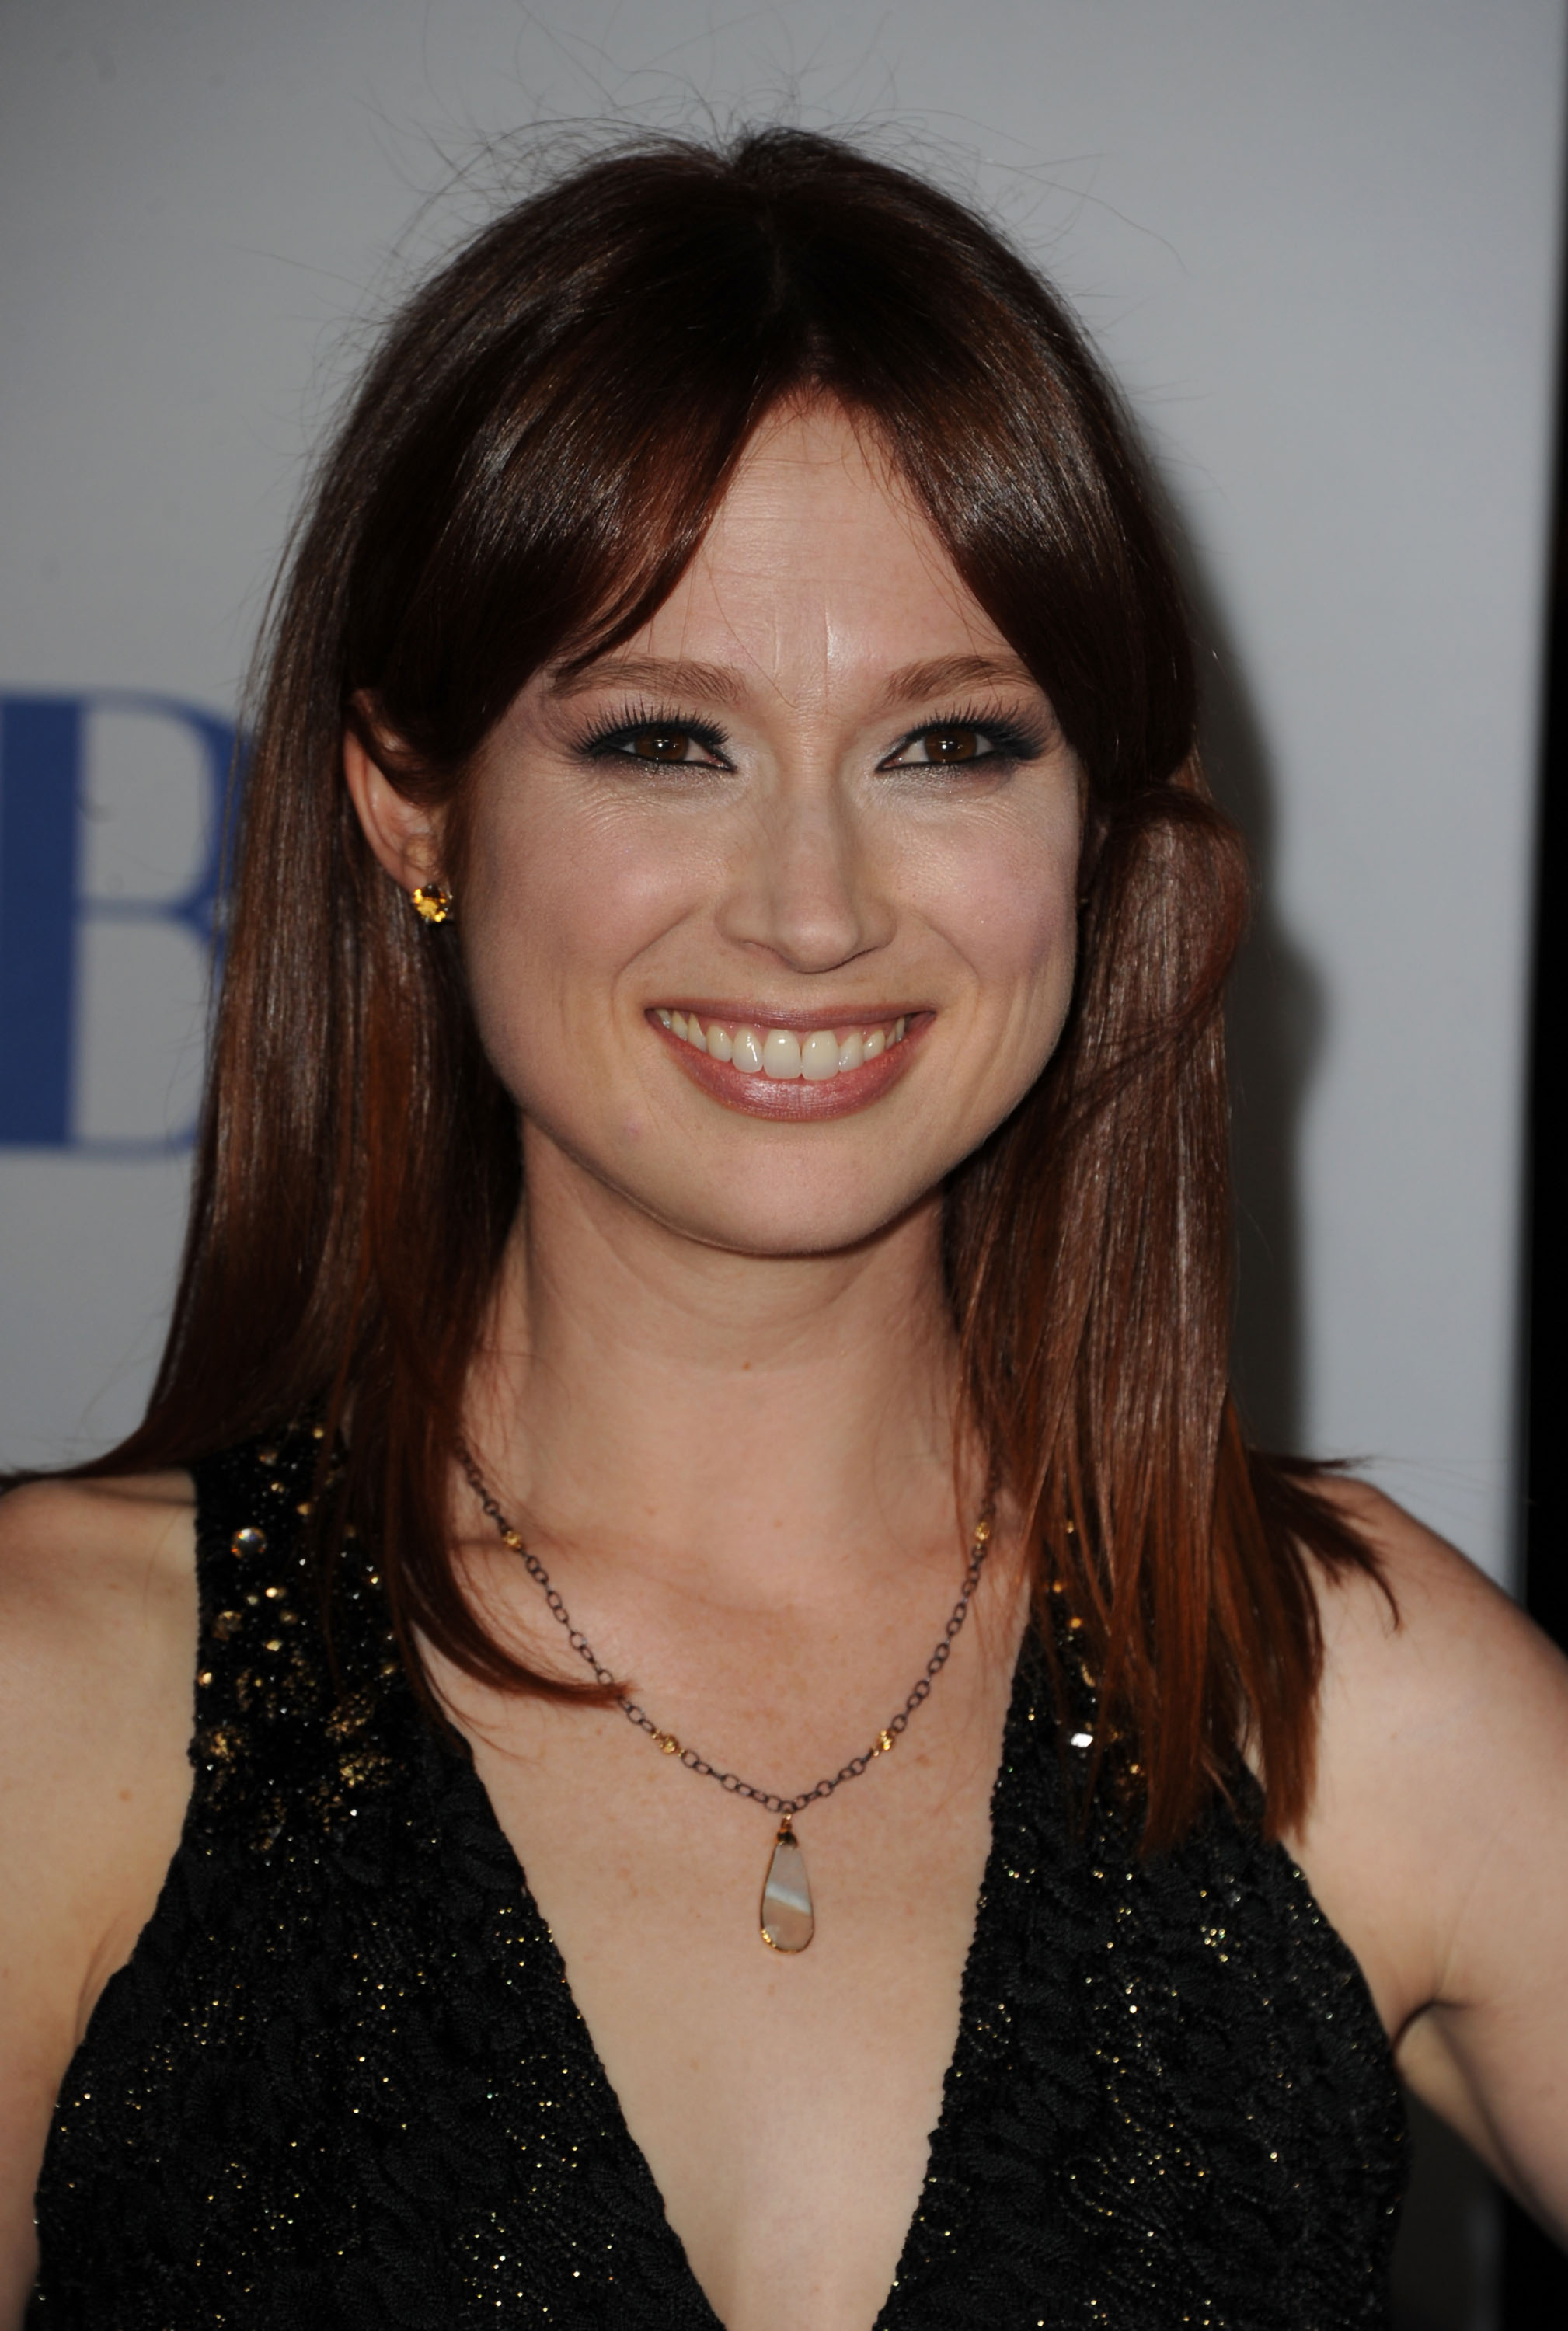 Ellie Kemper earned a  million dollar salary - leaving the net worth at 4 million in 2018